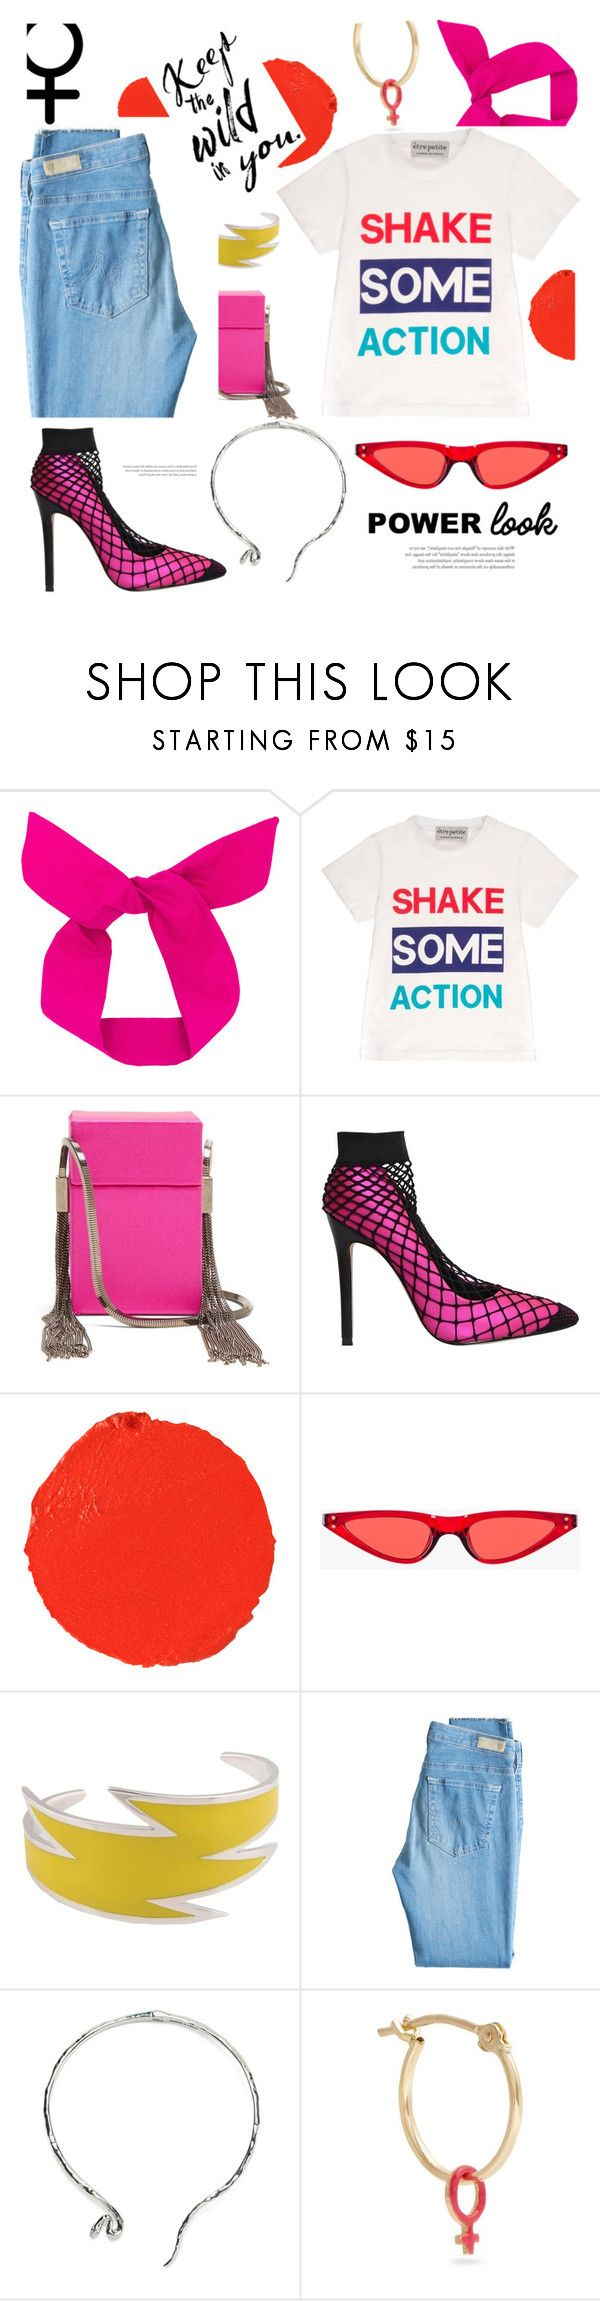 """""""Happy women's day!!"""" by gabrielleleroy ❤ liked on Polyvore featuring Être Cécile, Yves Saint Laurent, Privileged, Hourglass Cosmetics, Dsquared2, AG Adriano Goldschmied, Alison Lou, womensHistoryMonth, pressforprogress and GirlPride"""